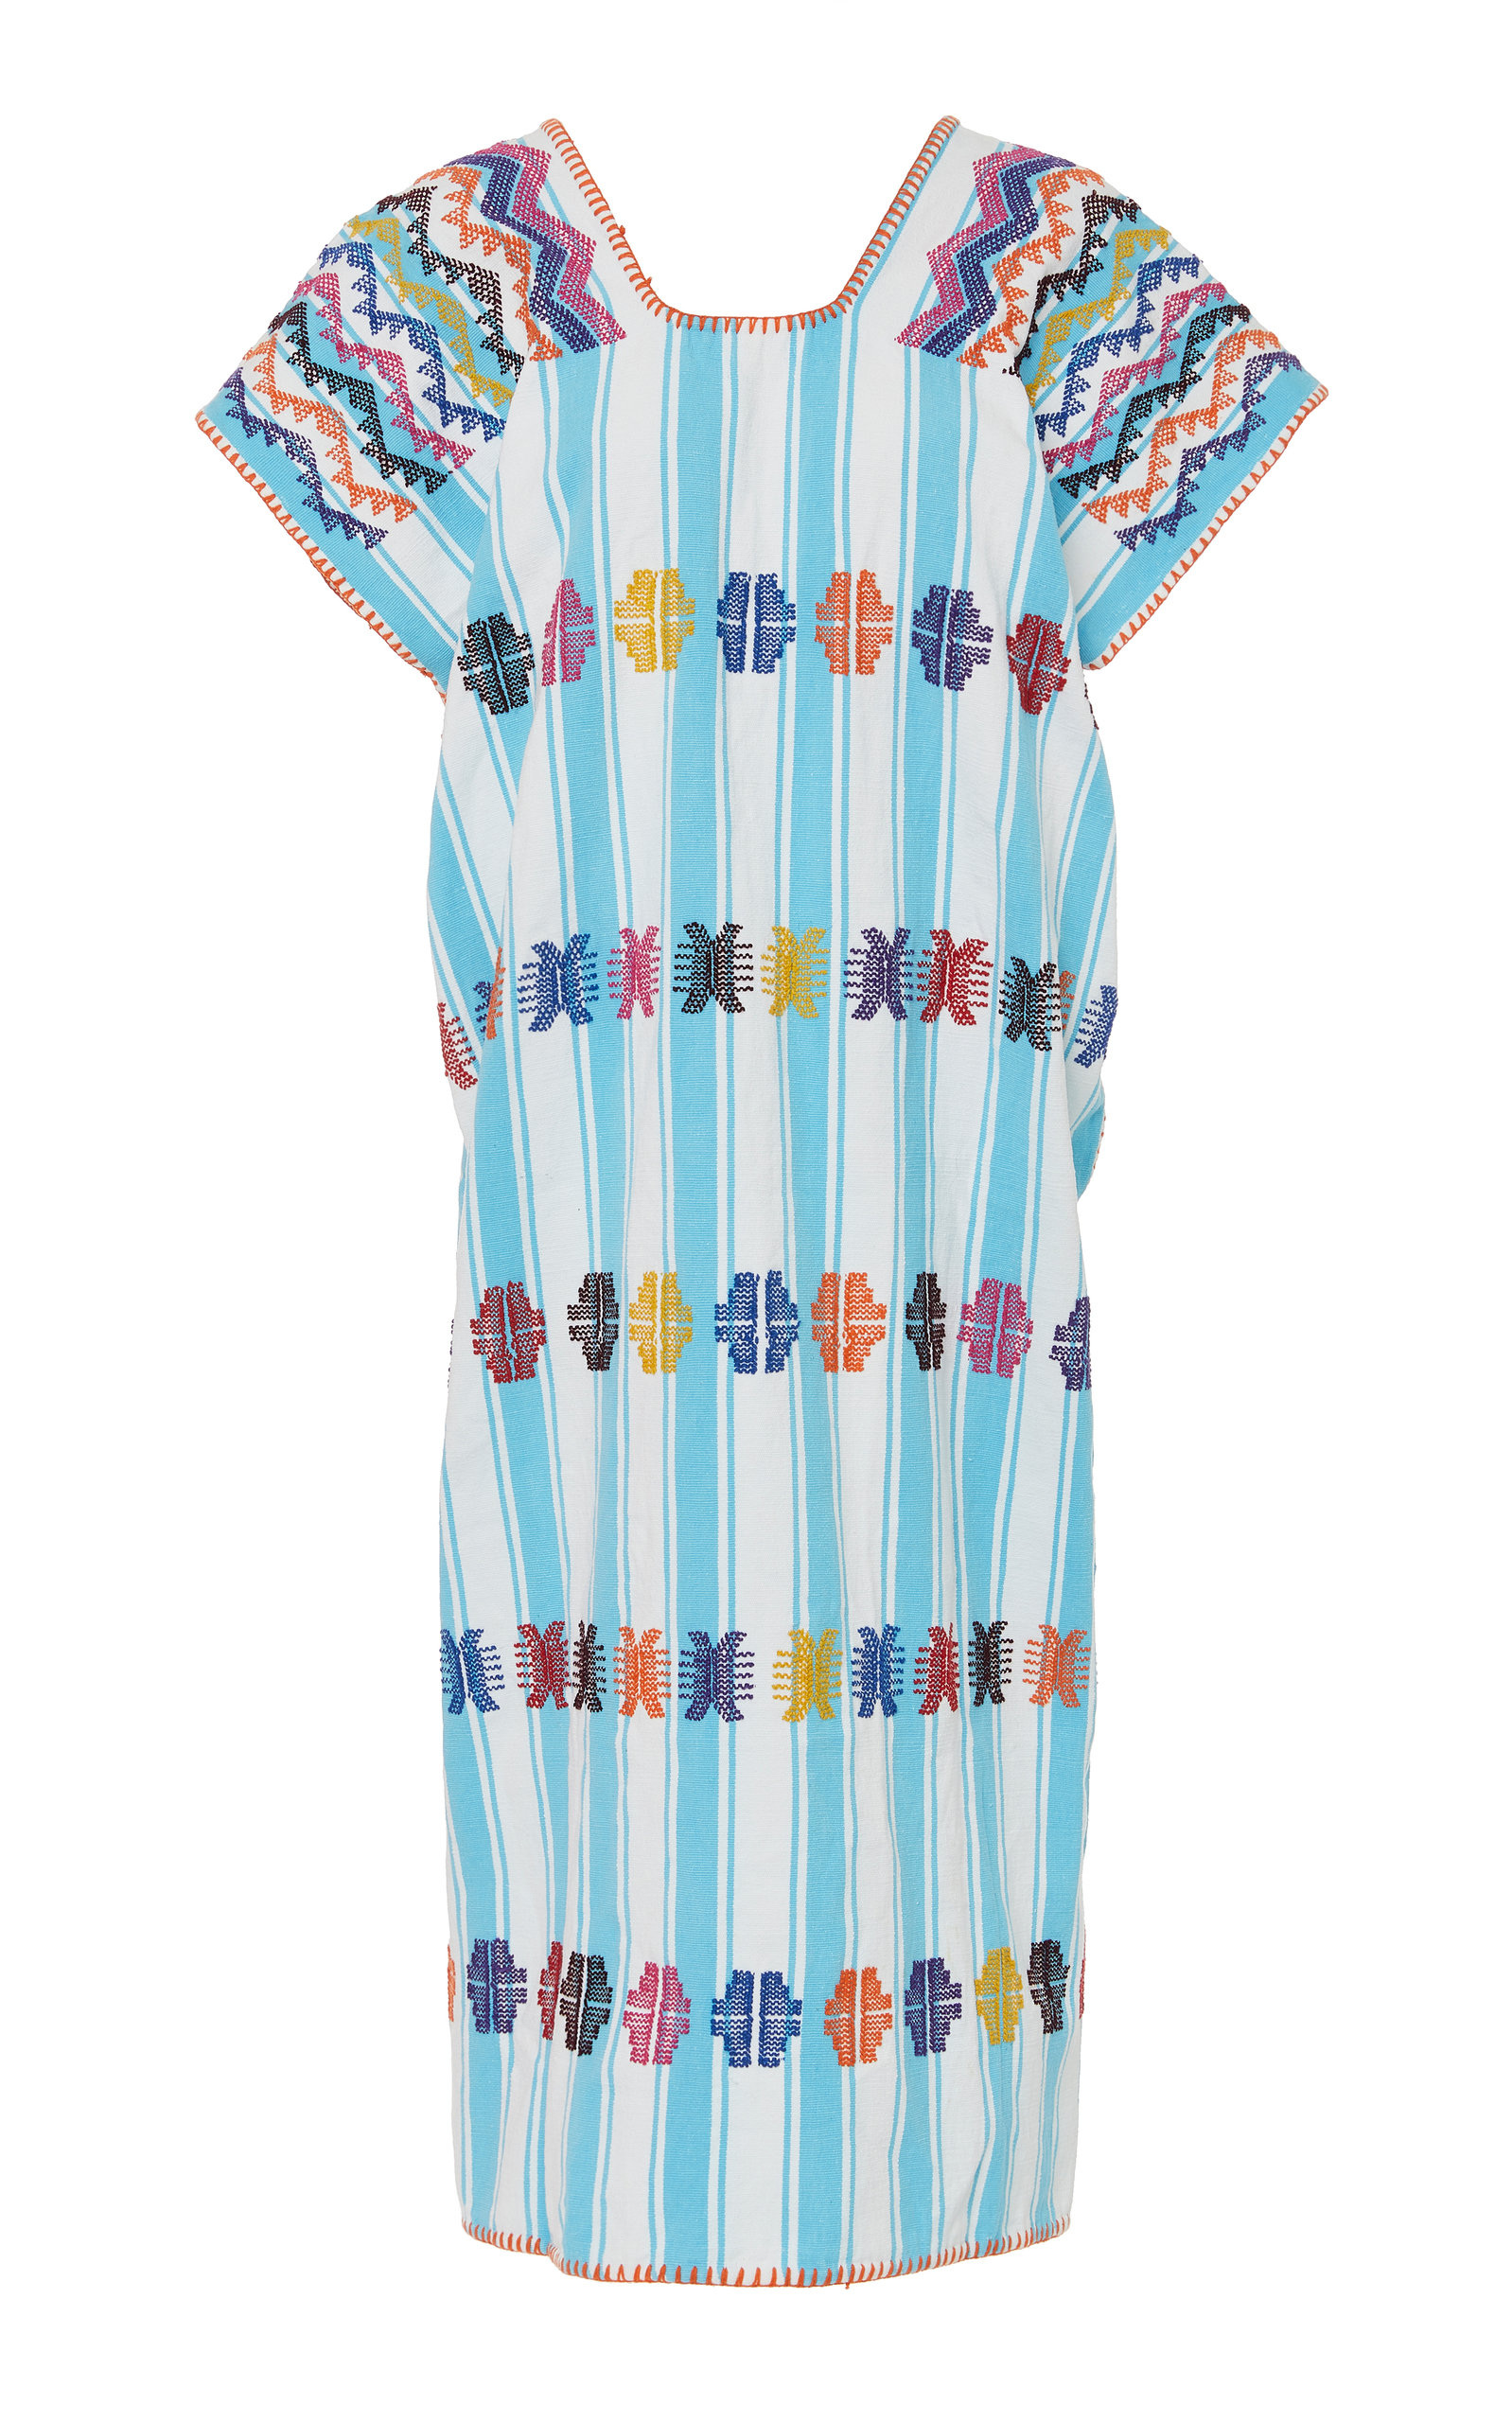 Pippa Holt Dresses Embroidered Striped Cotton Caftan